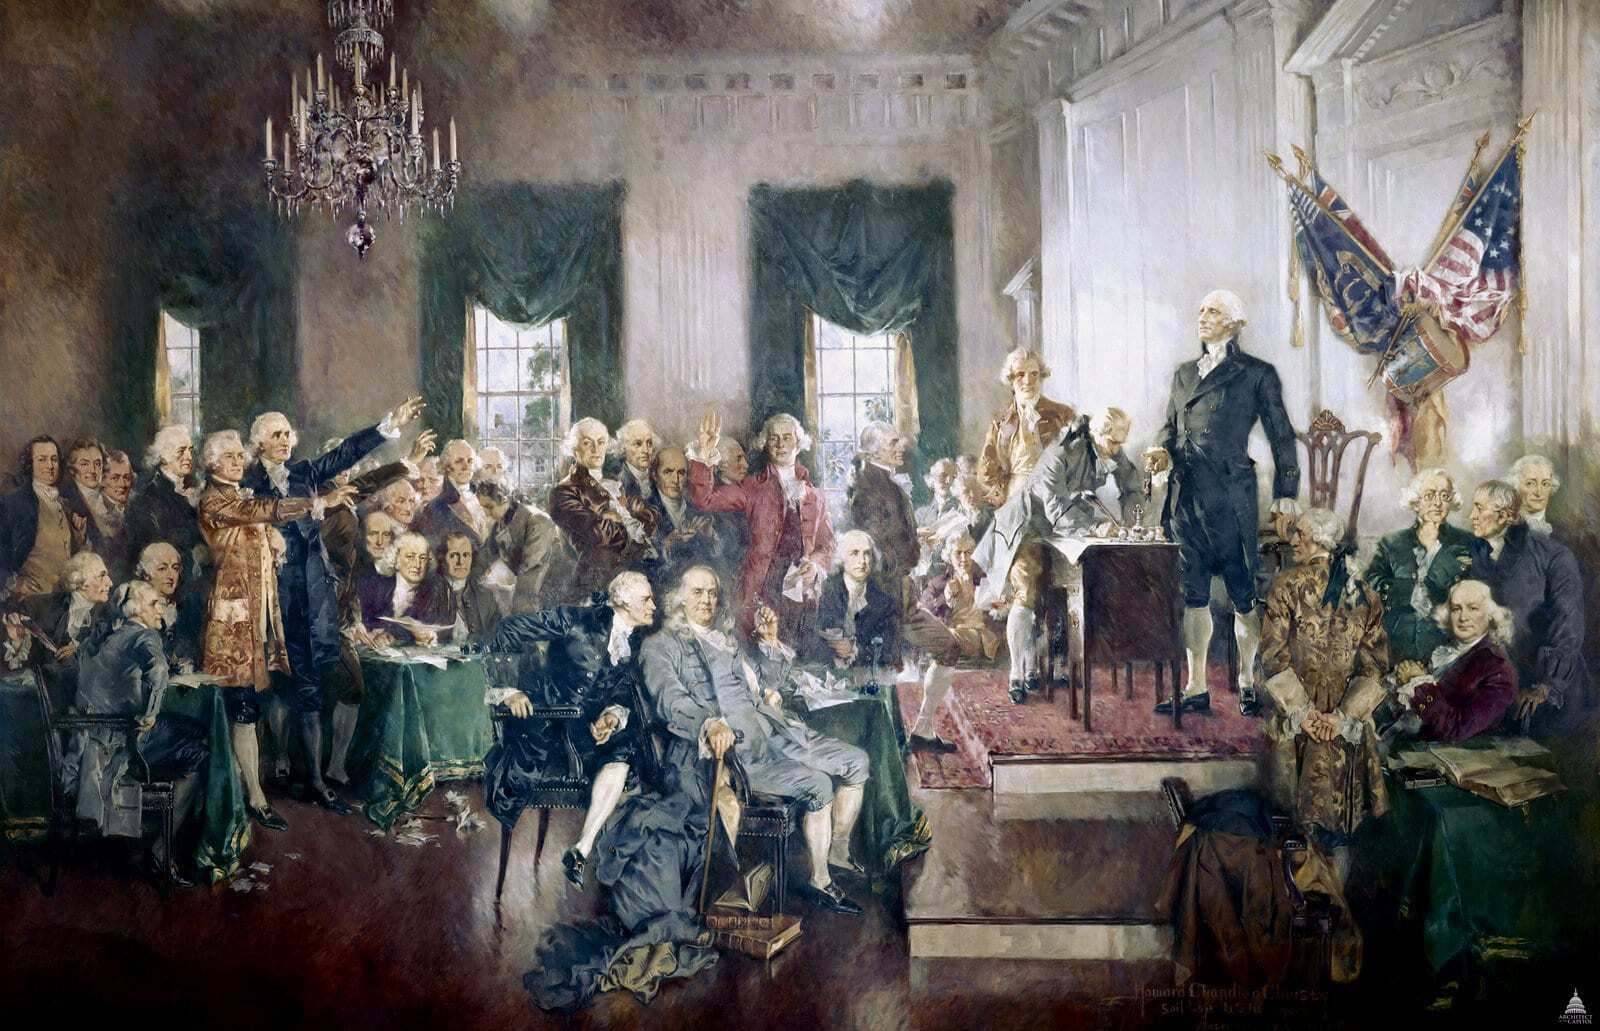 Delegates sign the US Constitution at Independence Hall in Philadelphia